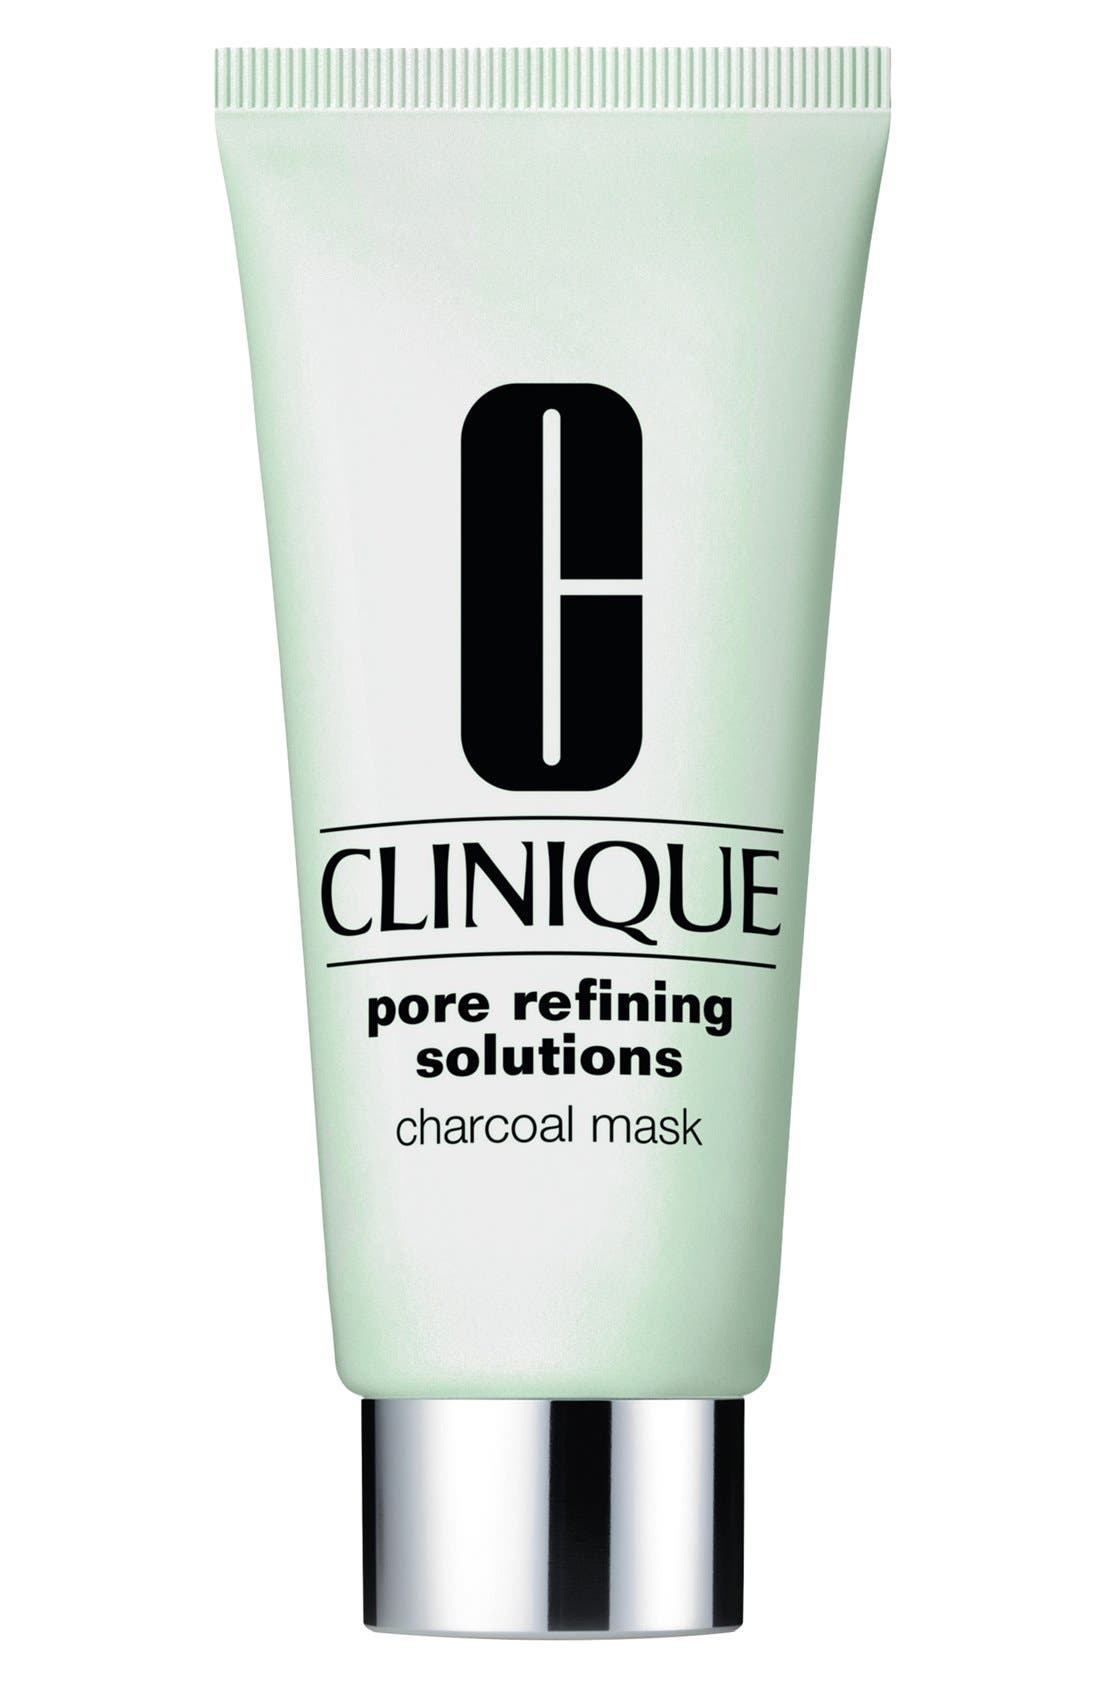 Clinique 'Pore Refining Solutions' Charcoal Mask